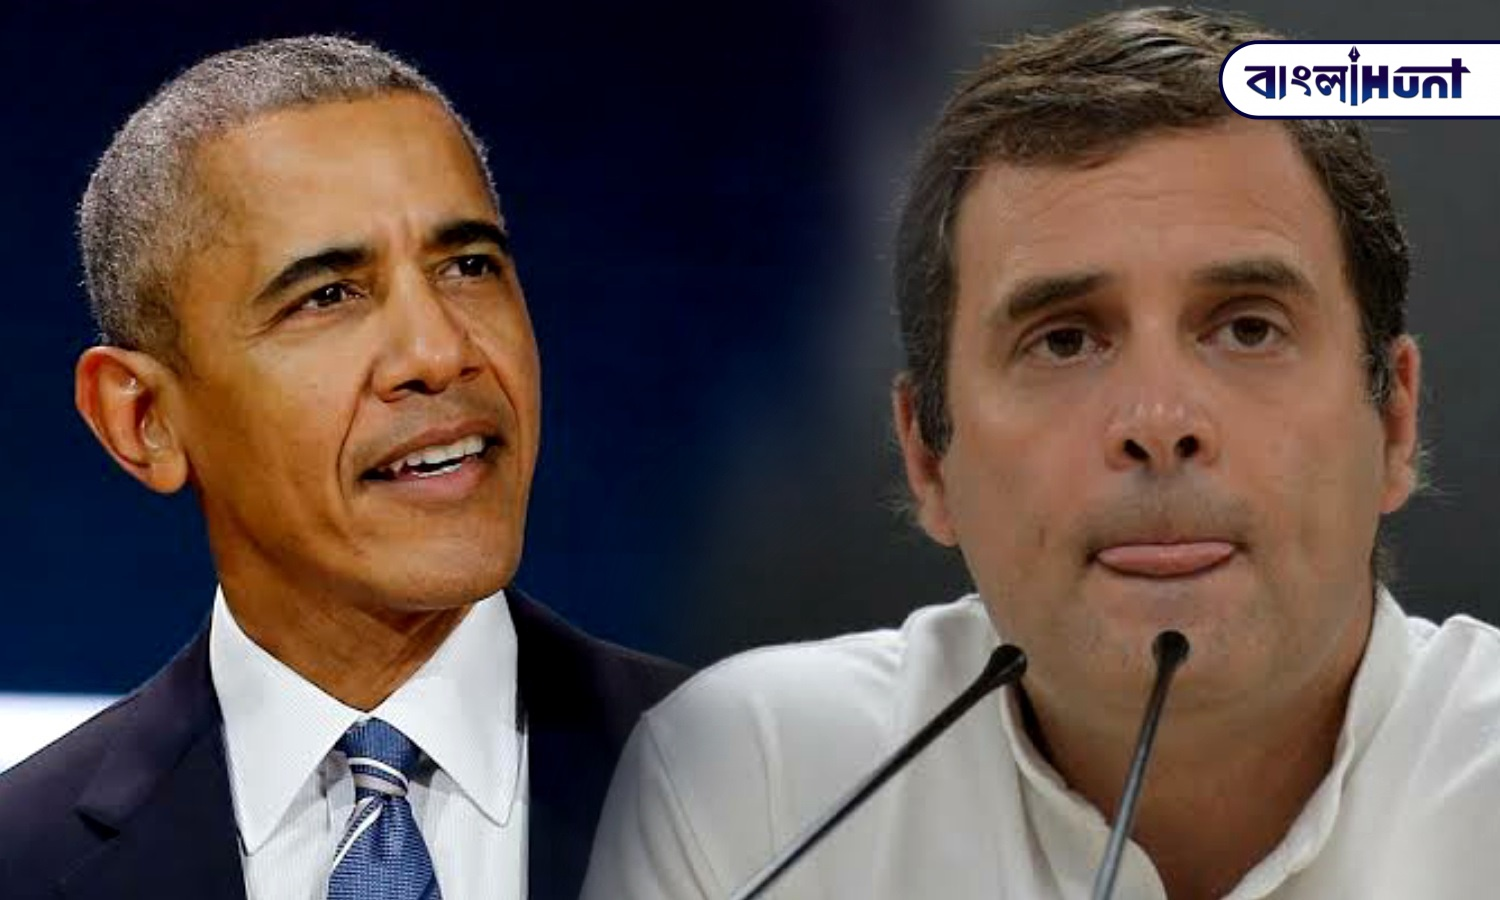 Rahul Gandhi is a nervous leader, lacks qualifications: Barack Obama,